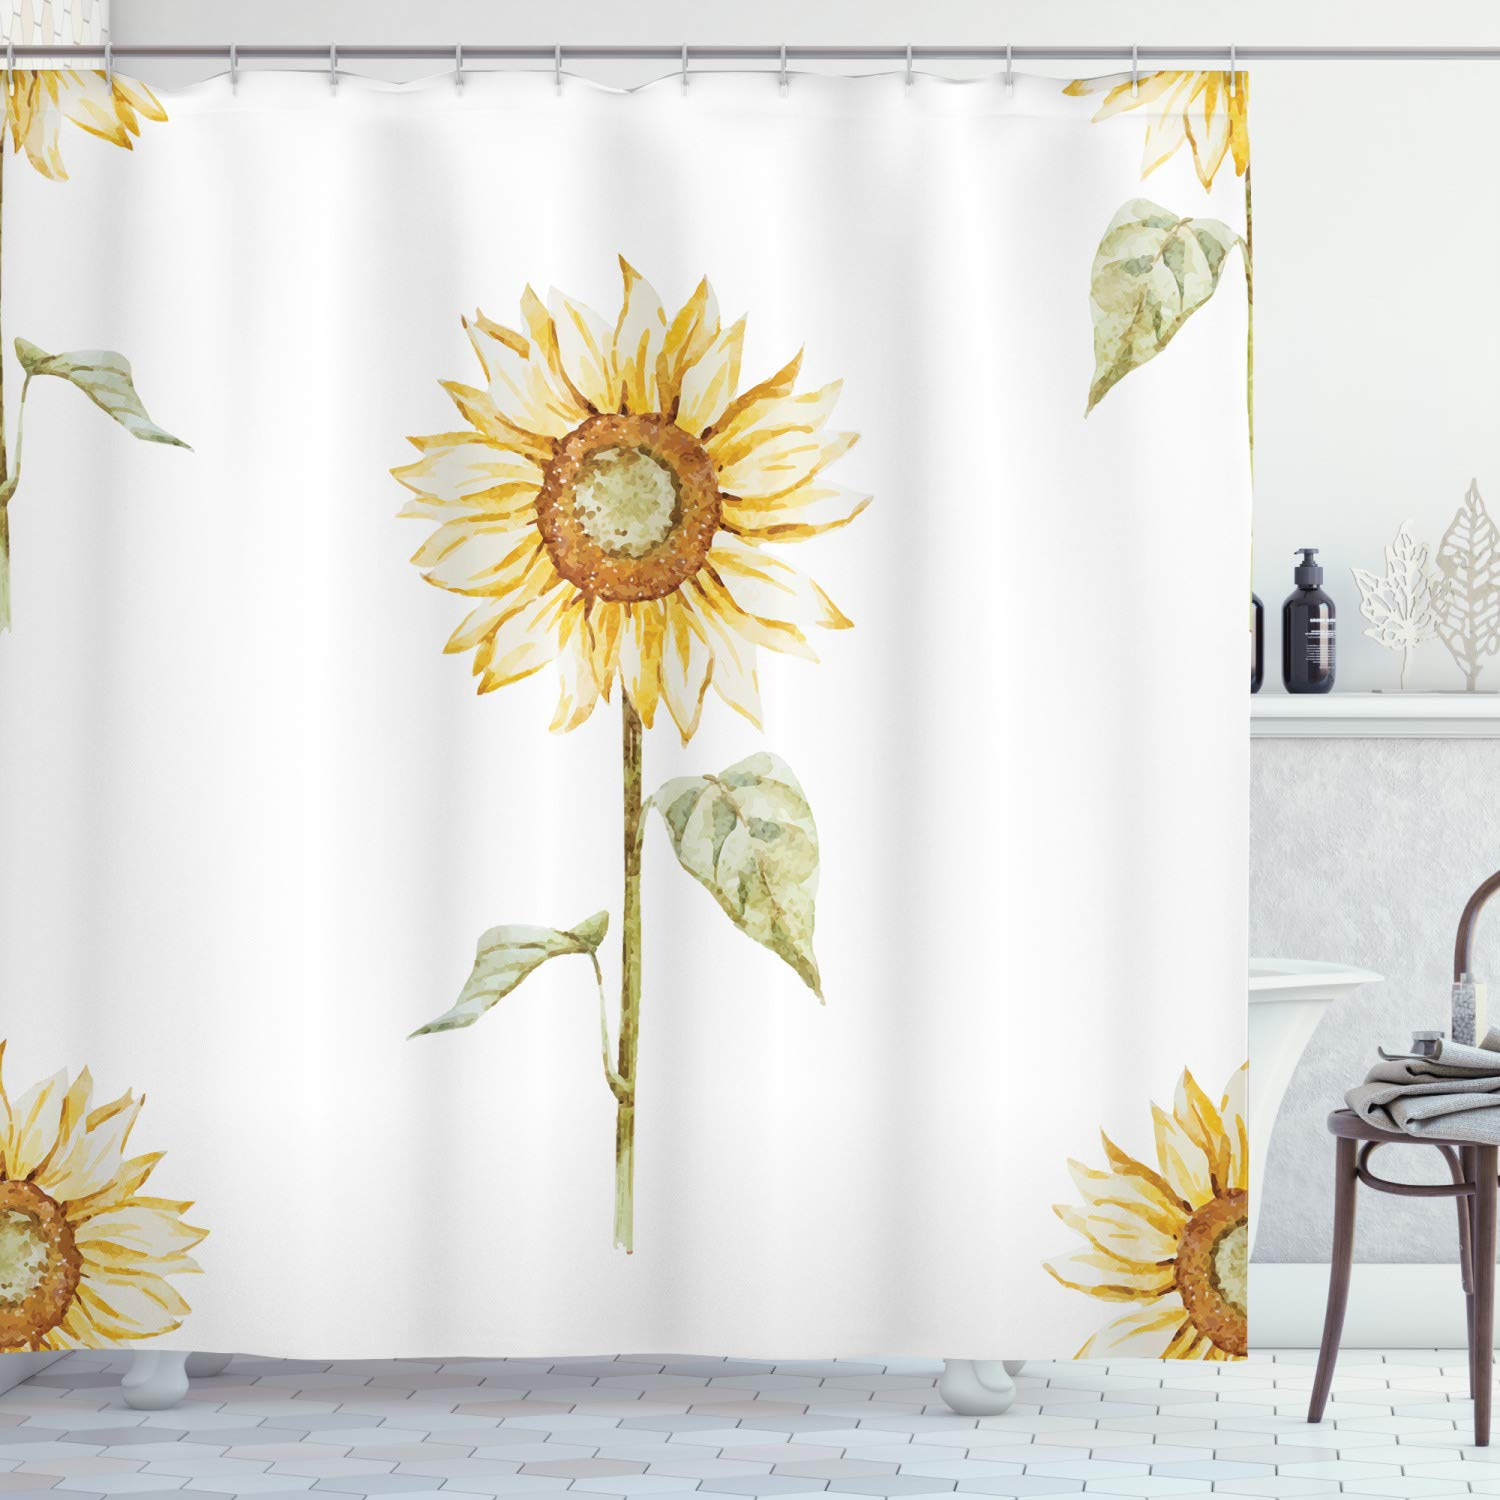 """Ambesonne Sunflower Shower Curtain, Sunflowers with Watercolor Painting Effect and in Minimalistic Design Artwork, Cloth Fabric Bathroom Decor Set with Hooks, 70"""" Long, Yellow White"""